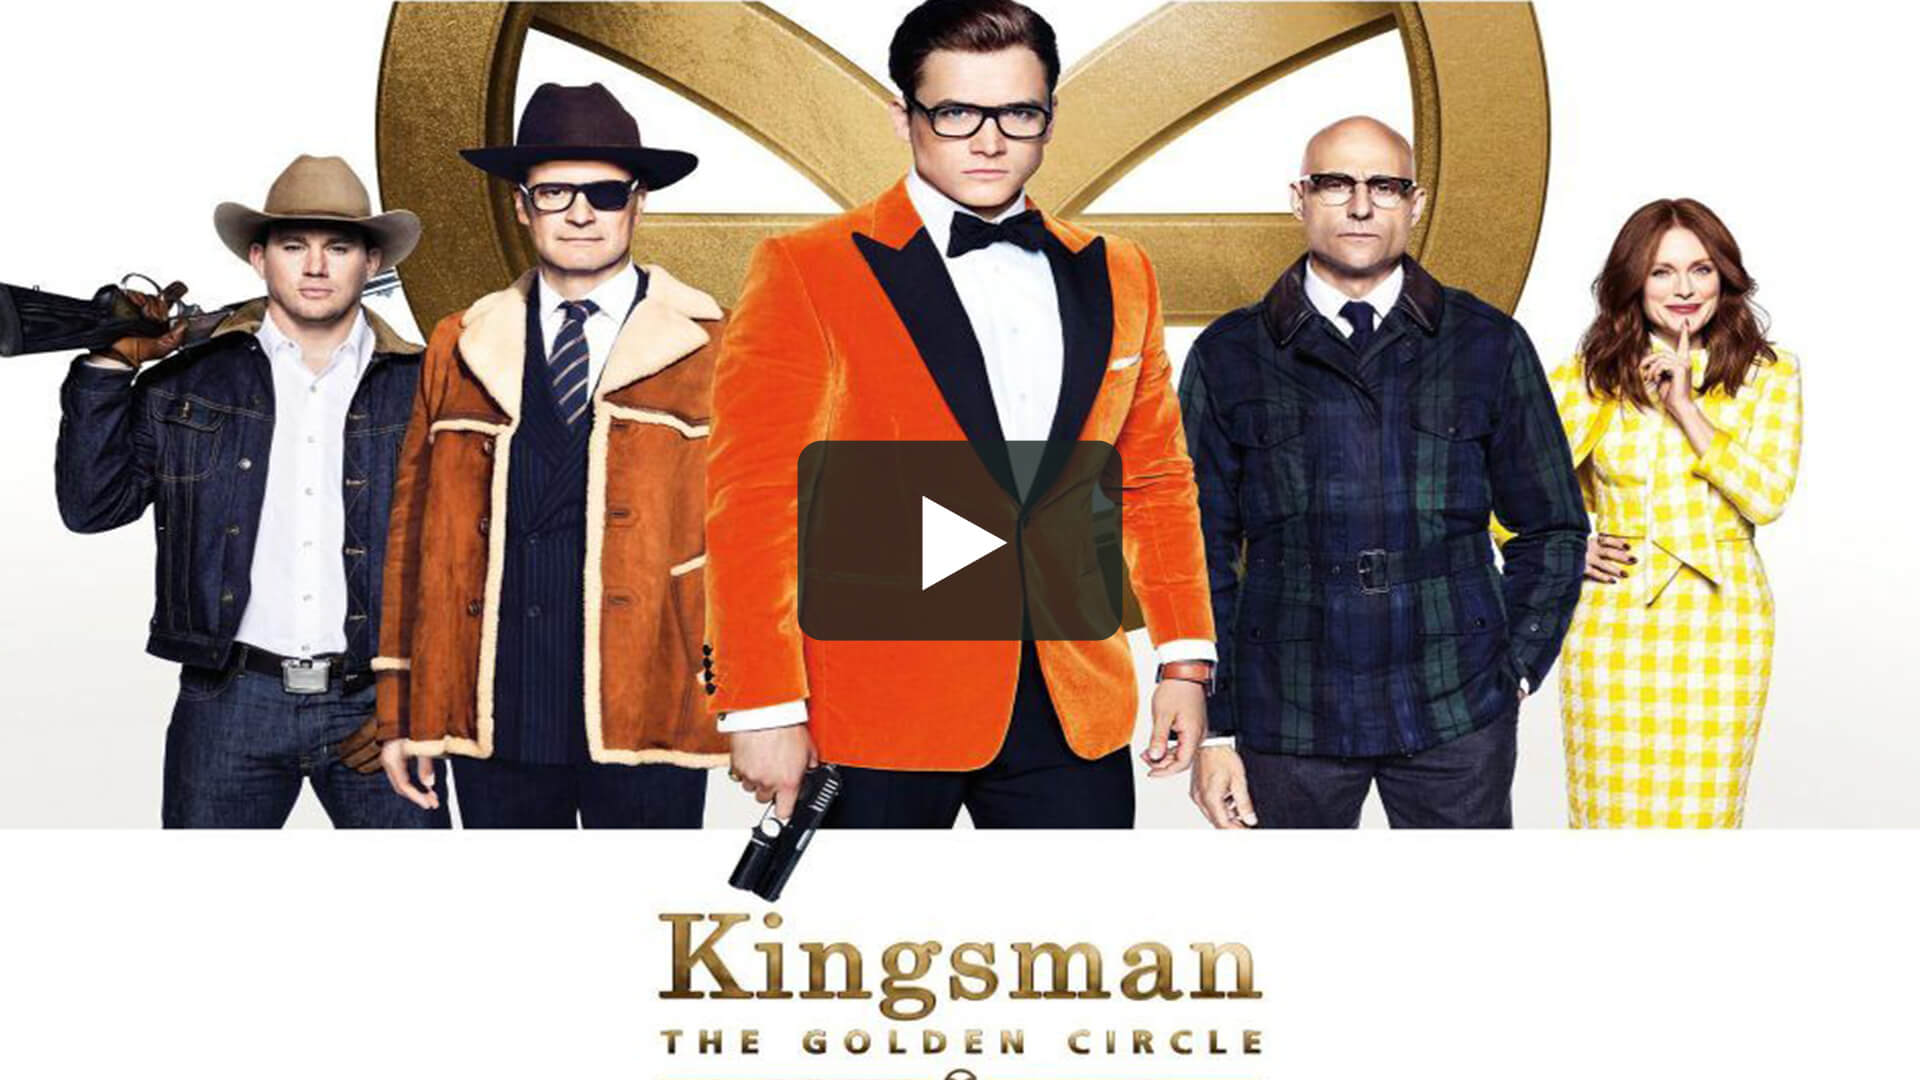 Kingsman 2 : The Golden Circle - 王牌特工2